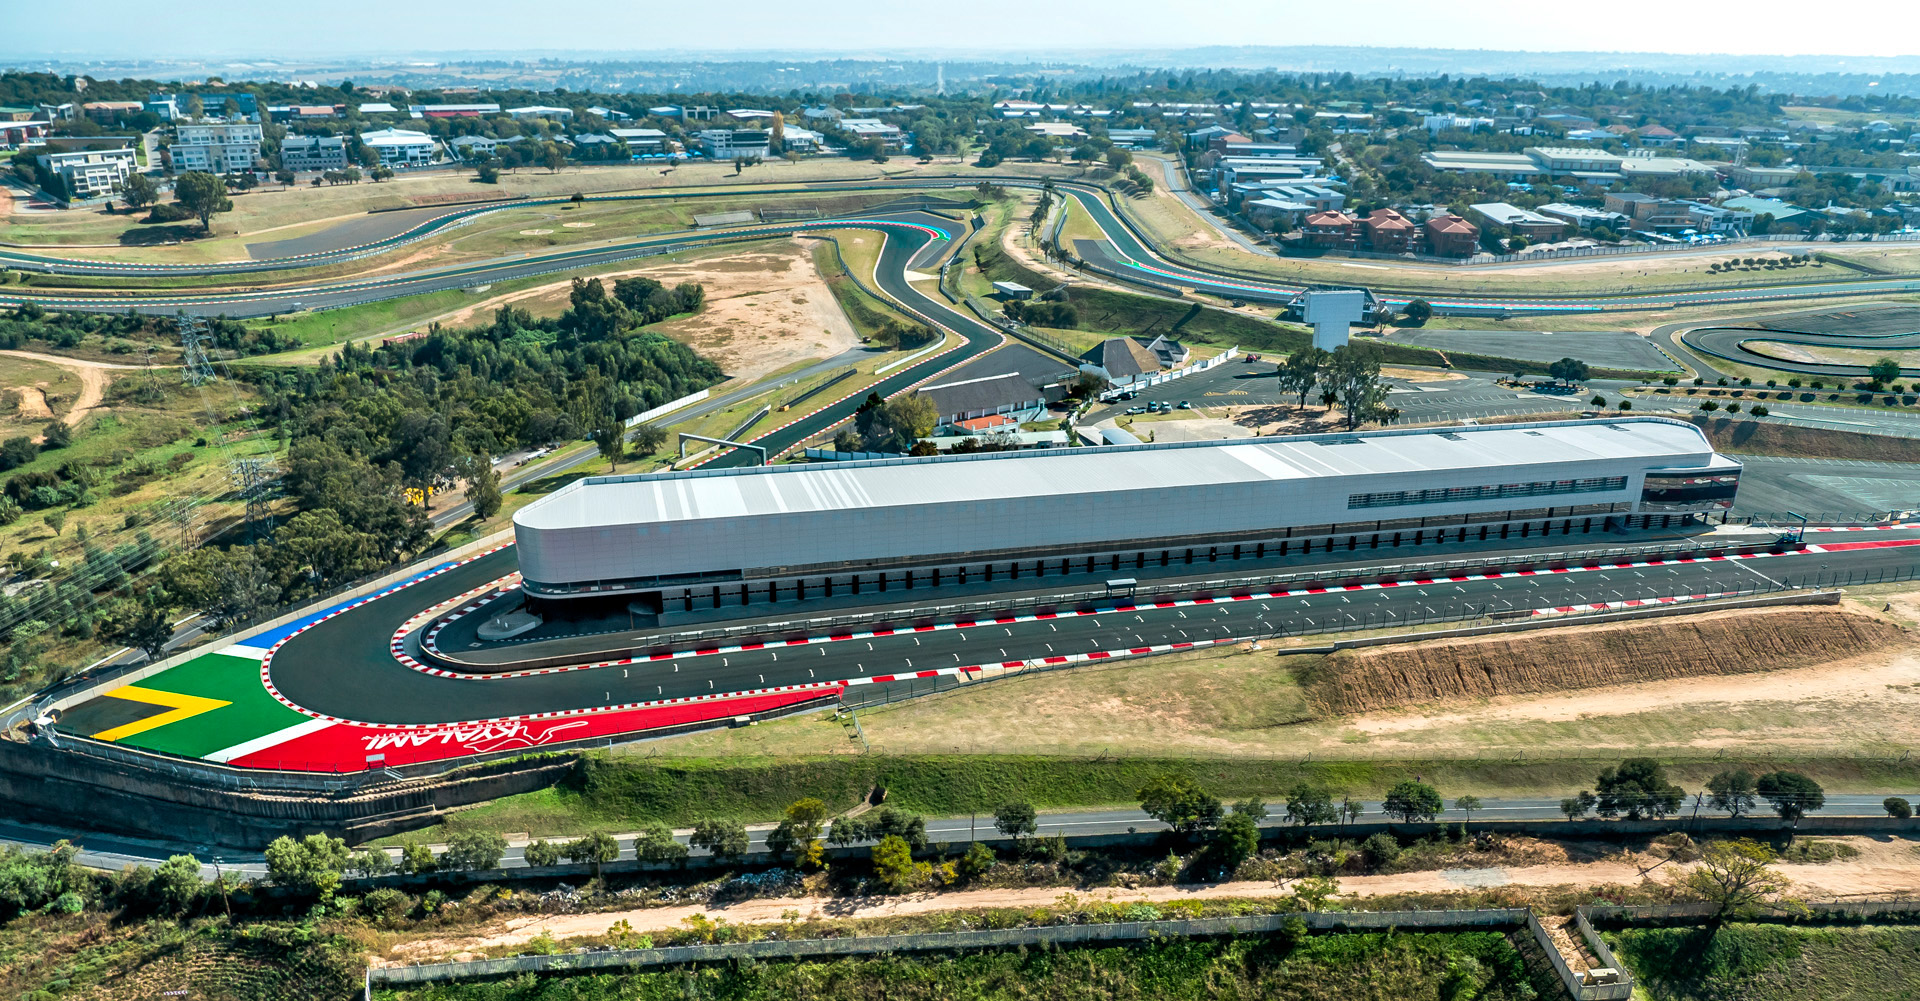 C. Kyalami International Convention Centre, Ingwe Corner & Main Straight